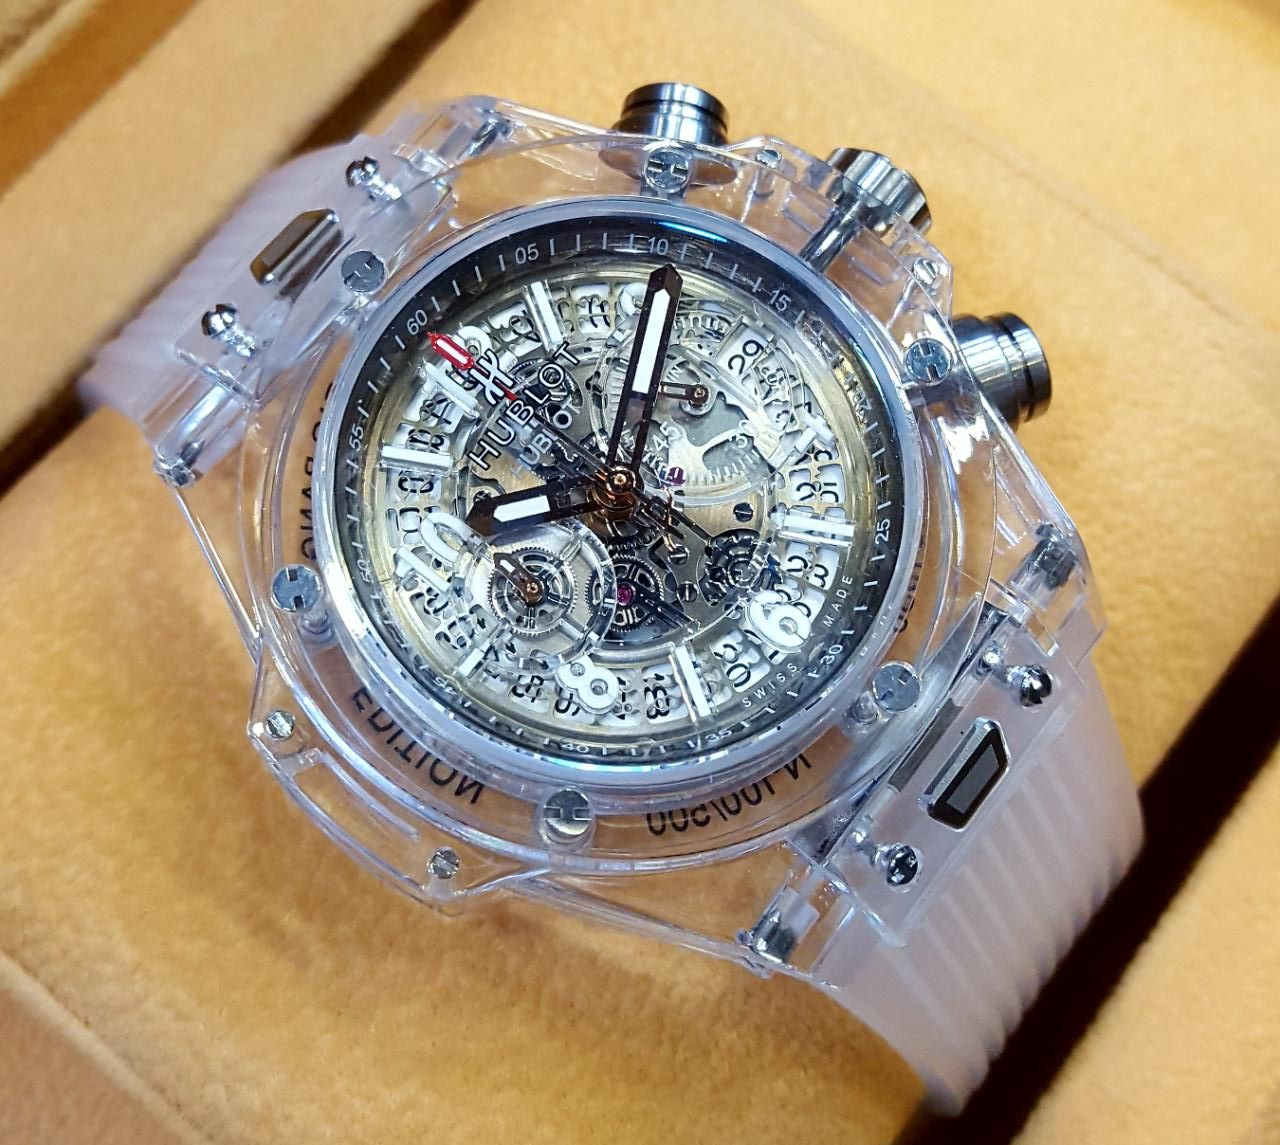 Hublot Watch Price >> Hublot Automatic Transparent Body Men S Watch Price Available Pk